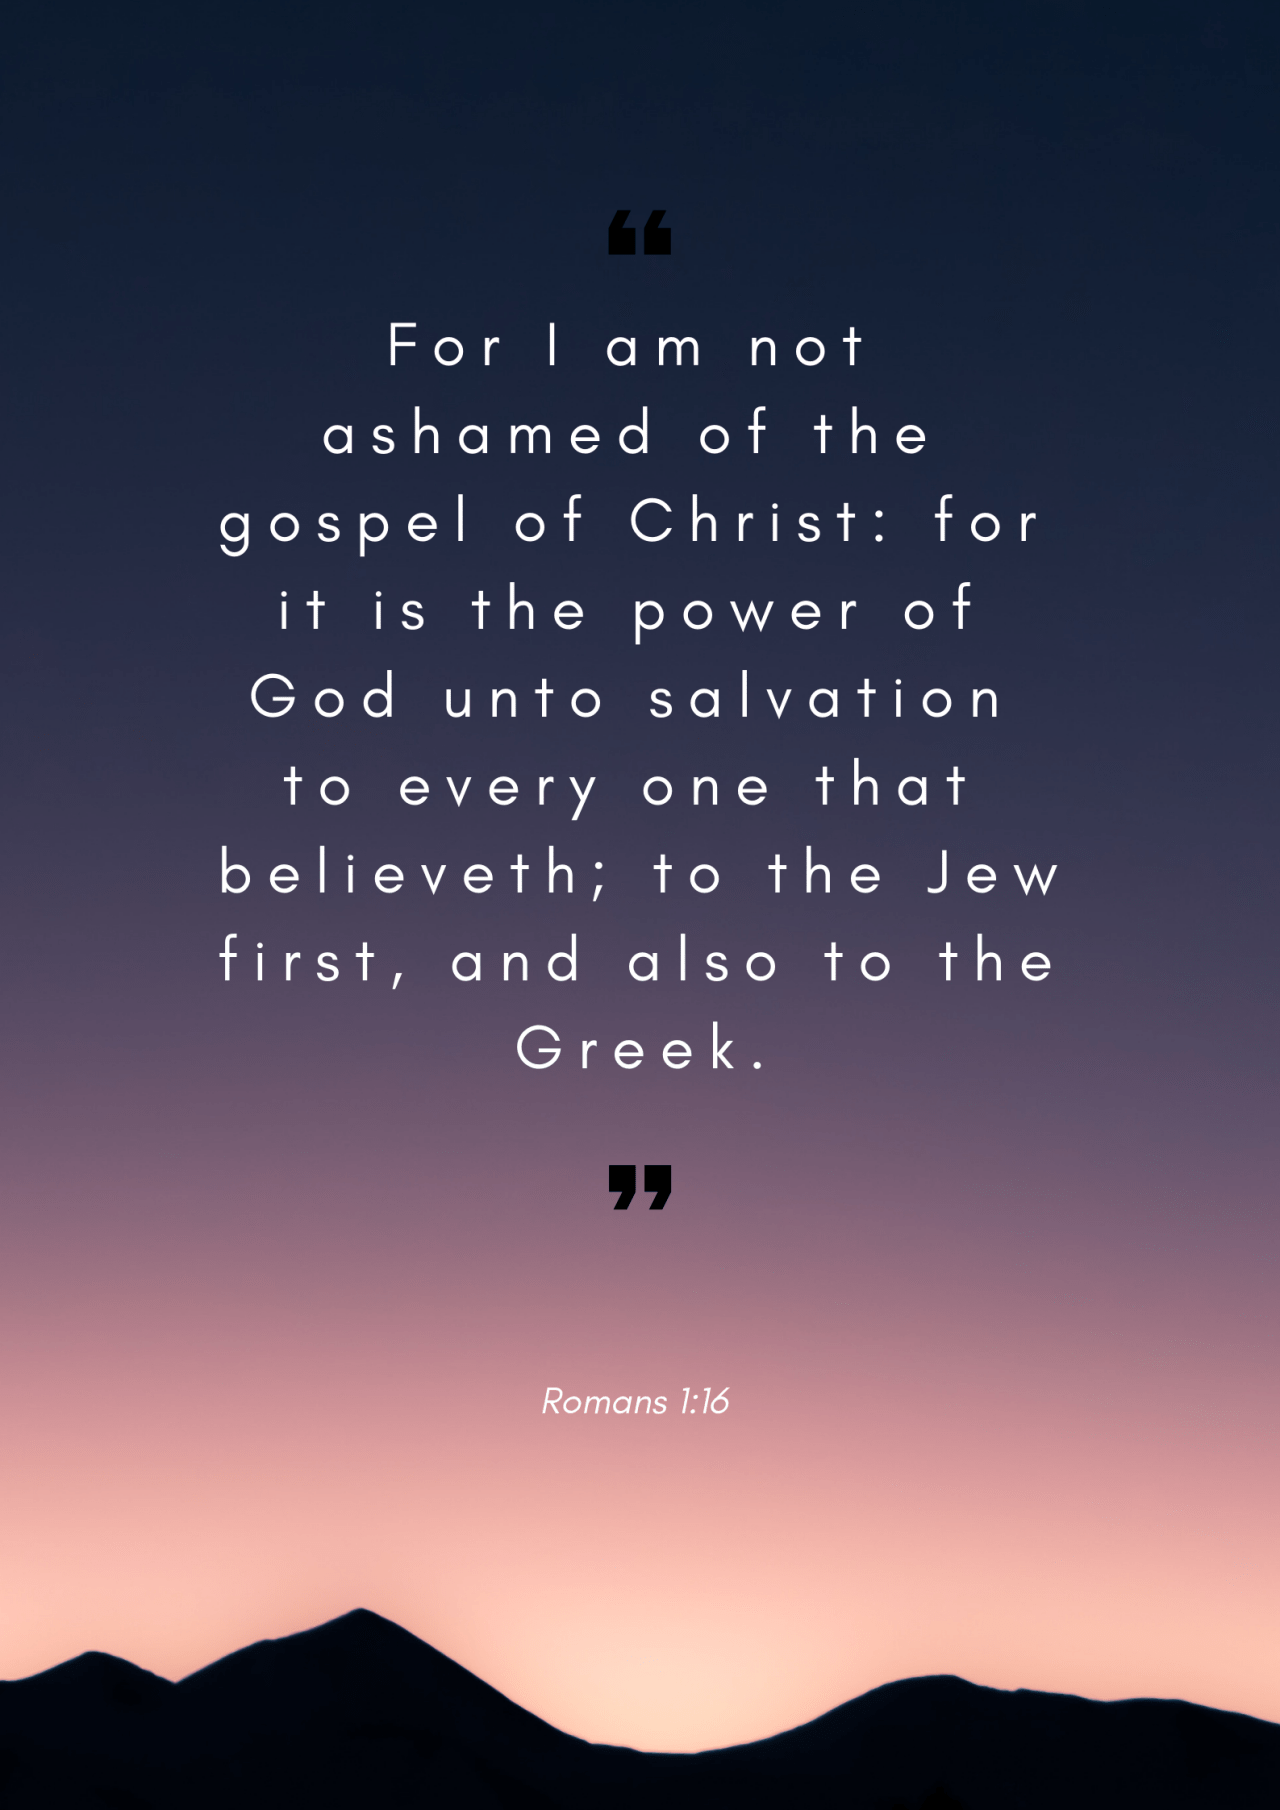 Wallpaper Iphone Android Romans 1 16 One Pixel Unlimited Bible Verse Wallpaper Iphone Iphone Wallpaper Quotes Bible Phone Wallpaper Bible